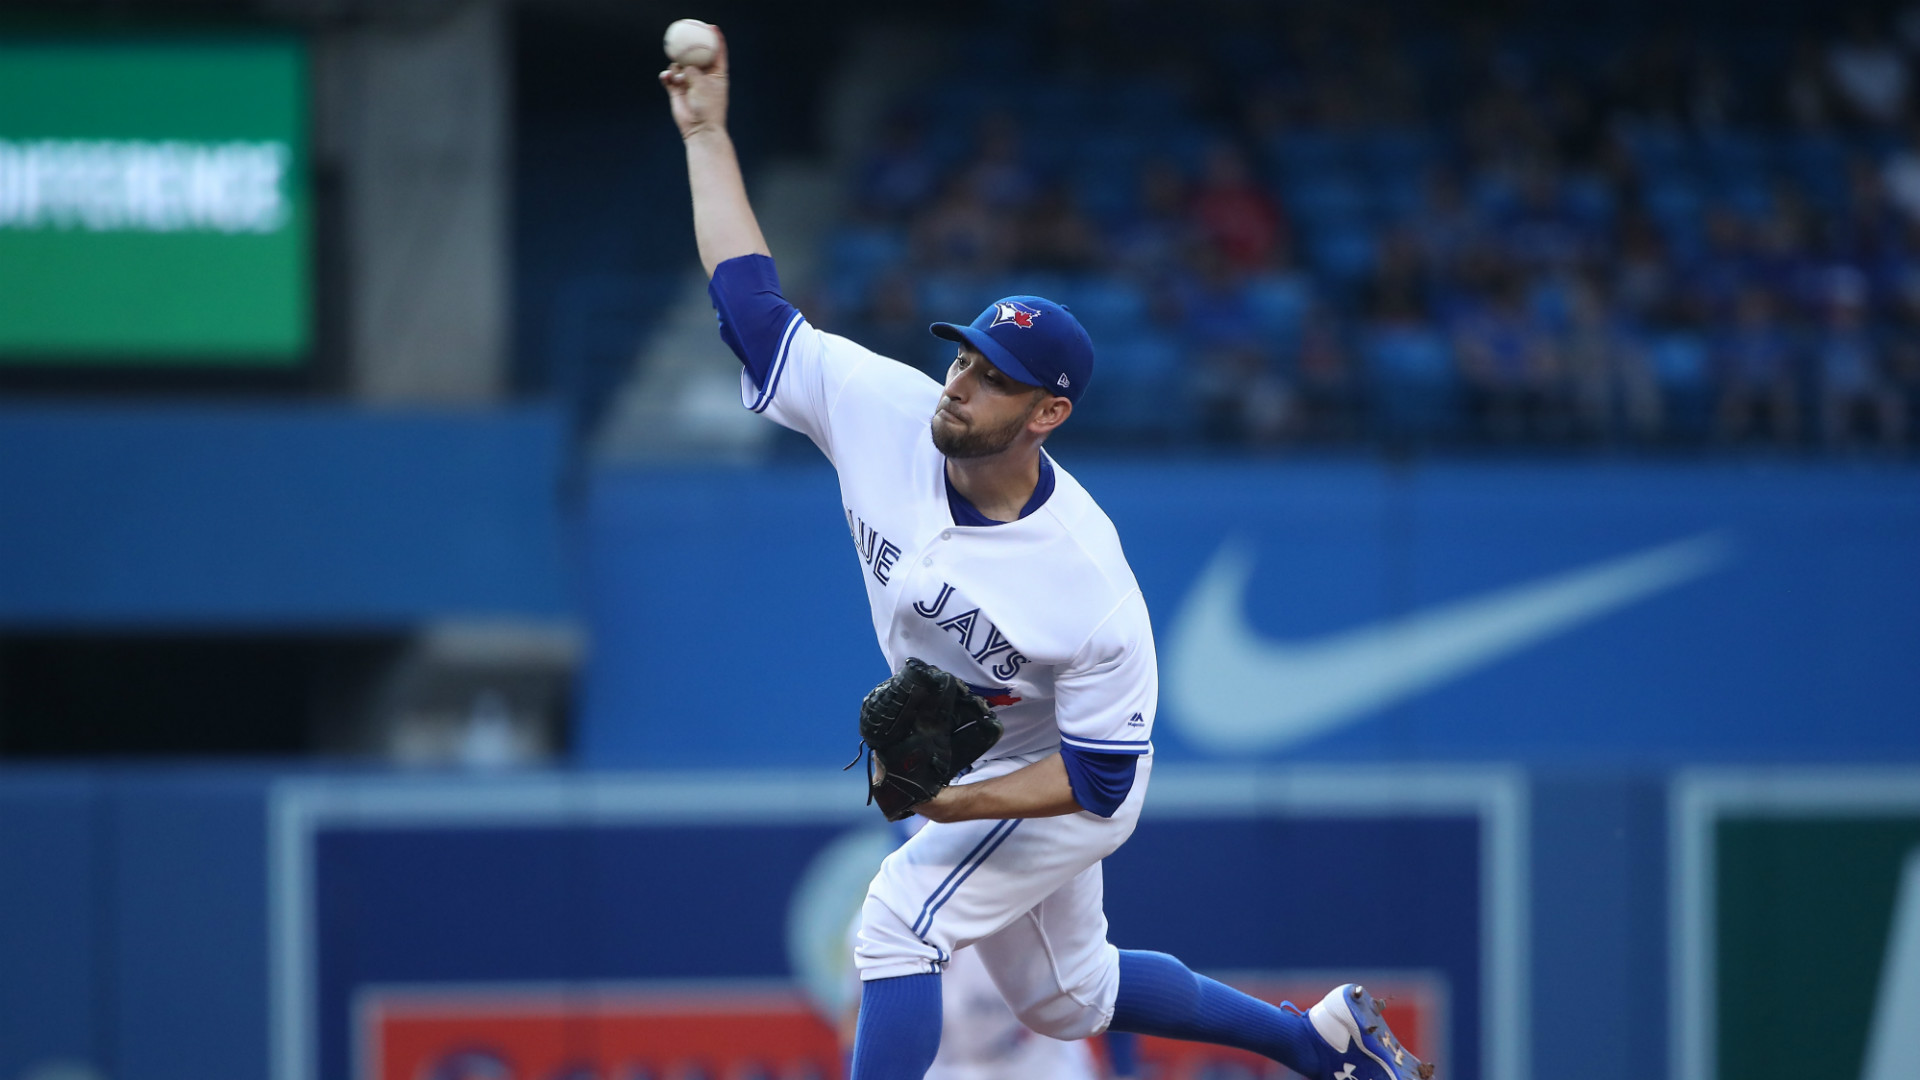 Marco Estrada allows two home runs in Blue Jays' loss to Rays